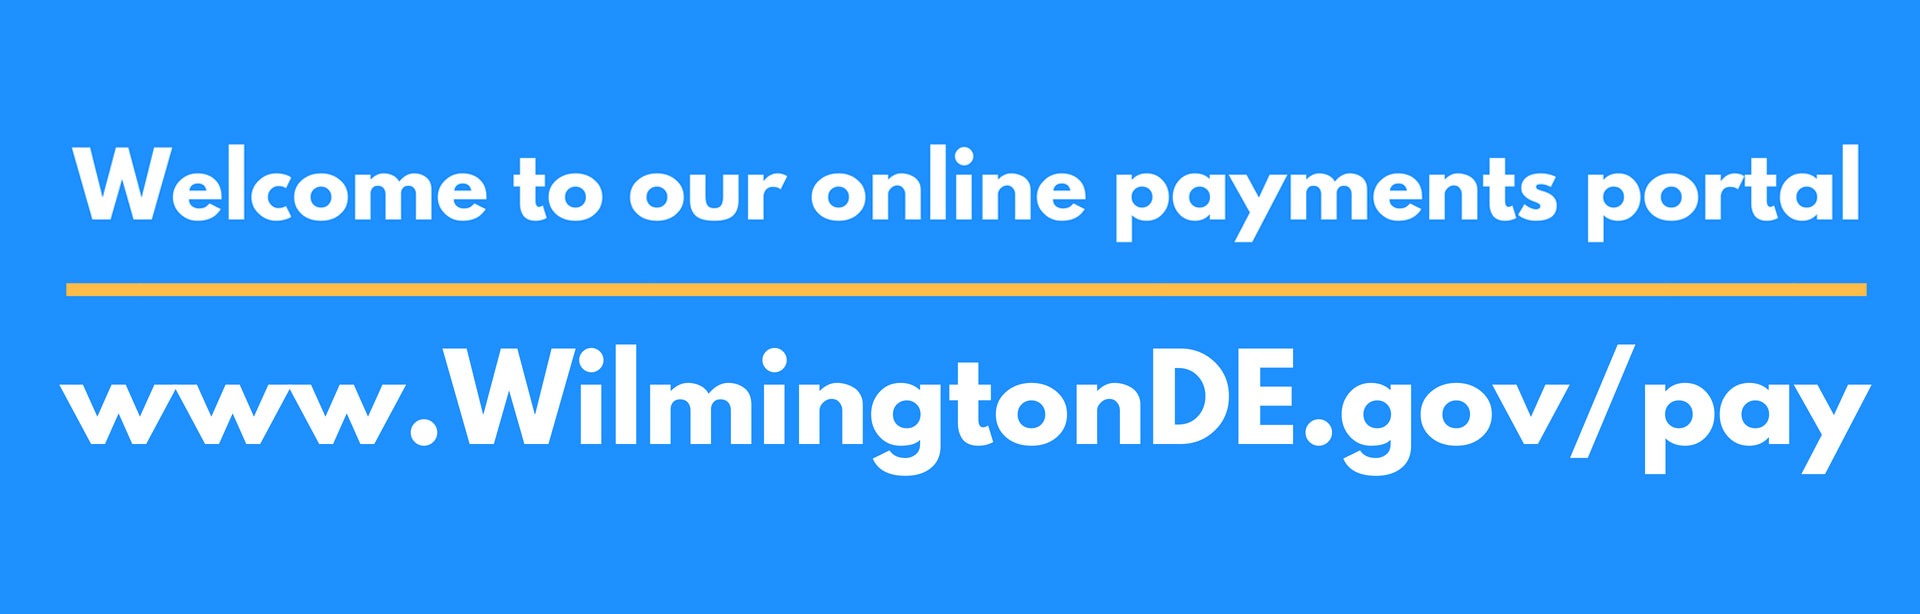 Pay online at www.wilmingtonde.gov/pay